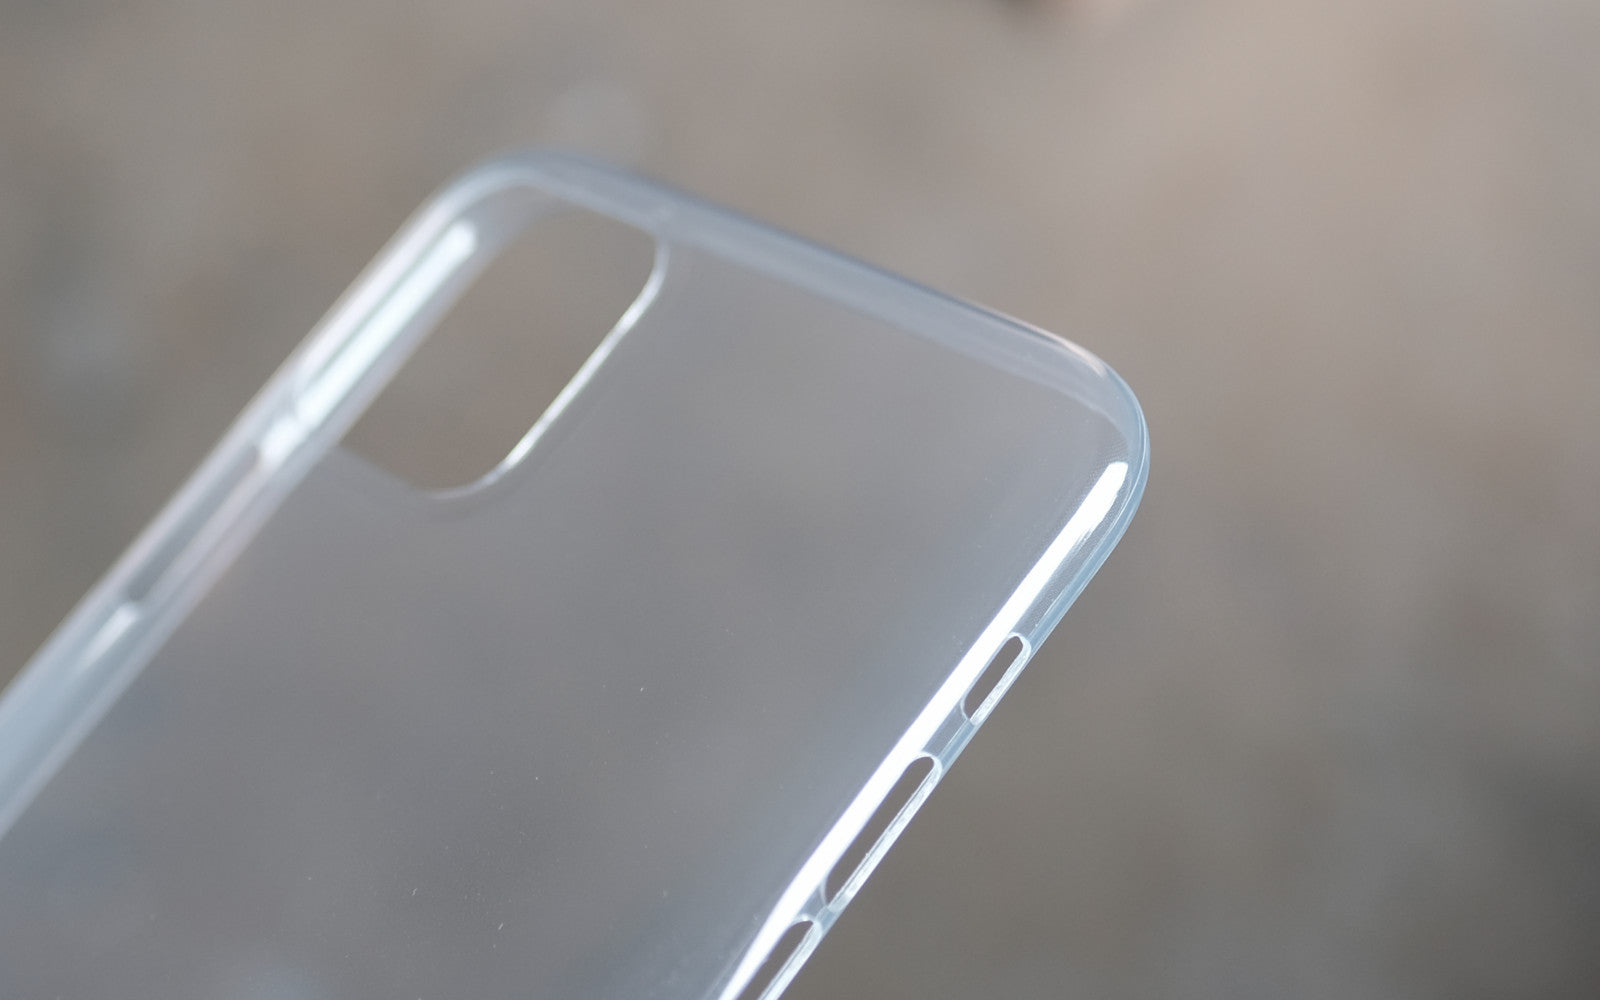 Bare Naked EX - Thinnest Clear Case for iPhone 11 11 Pro and 11 Pro Max - No Yellowing